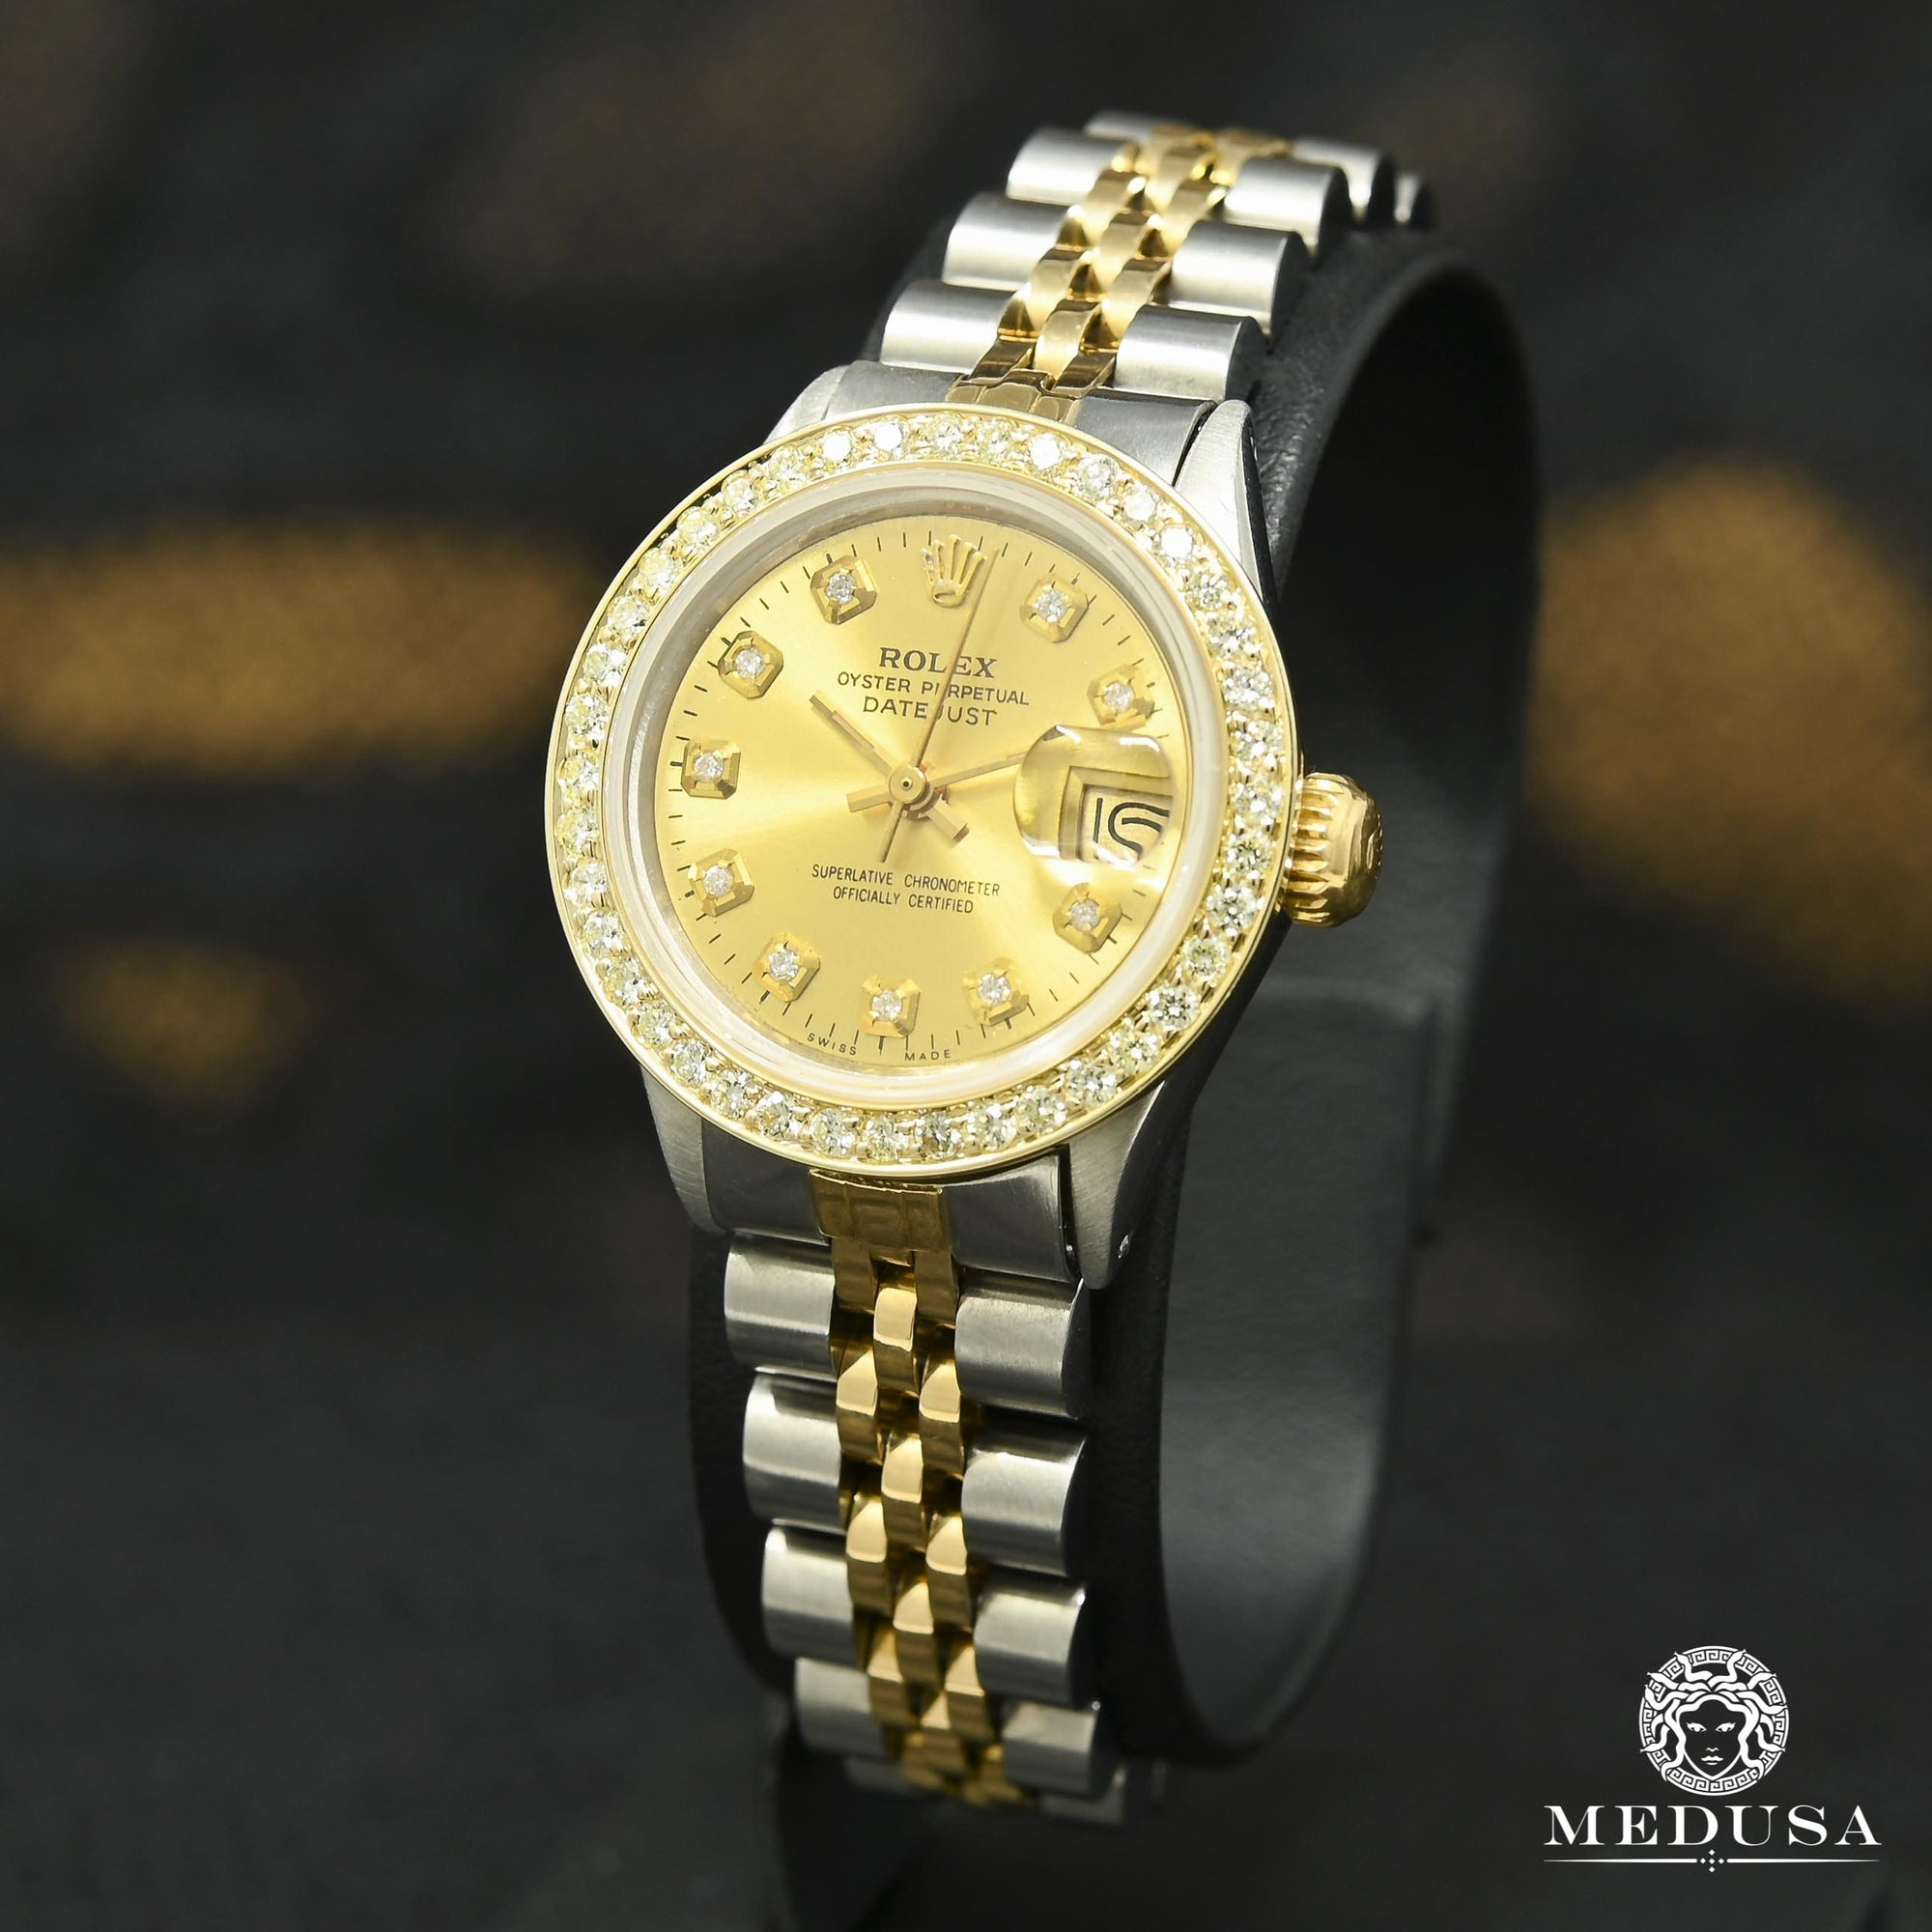 Rolex watch Rolex Women's Watch Datejust 26mm - Champagne Gold 2 Tons